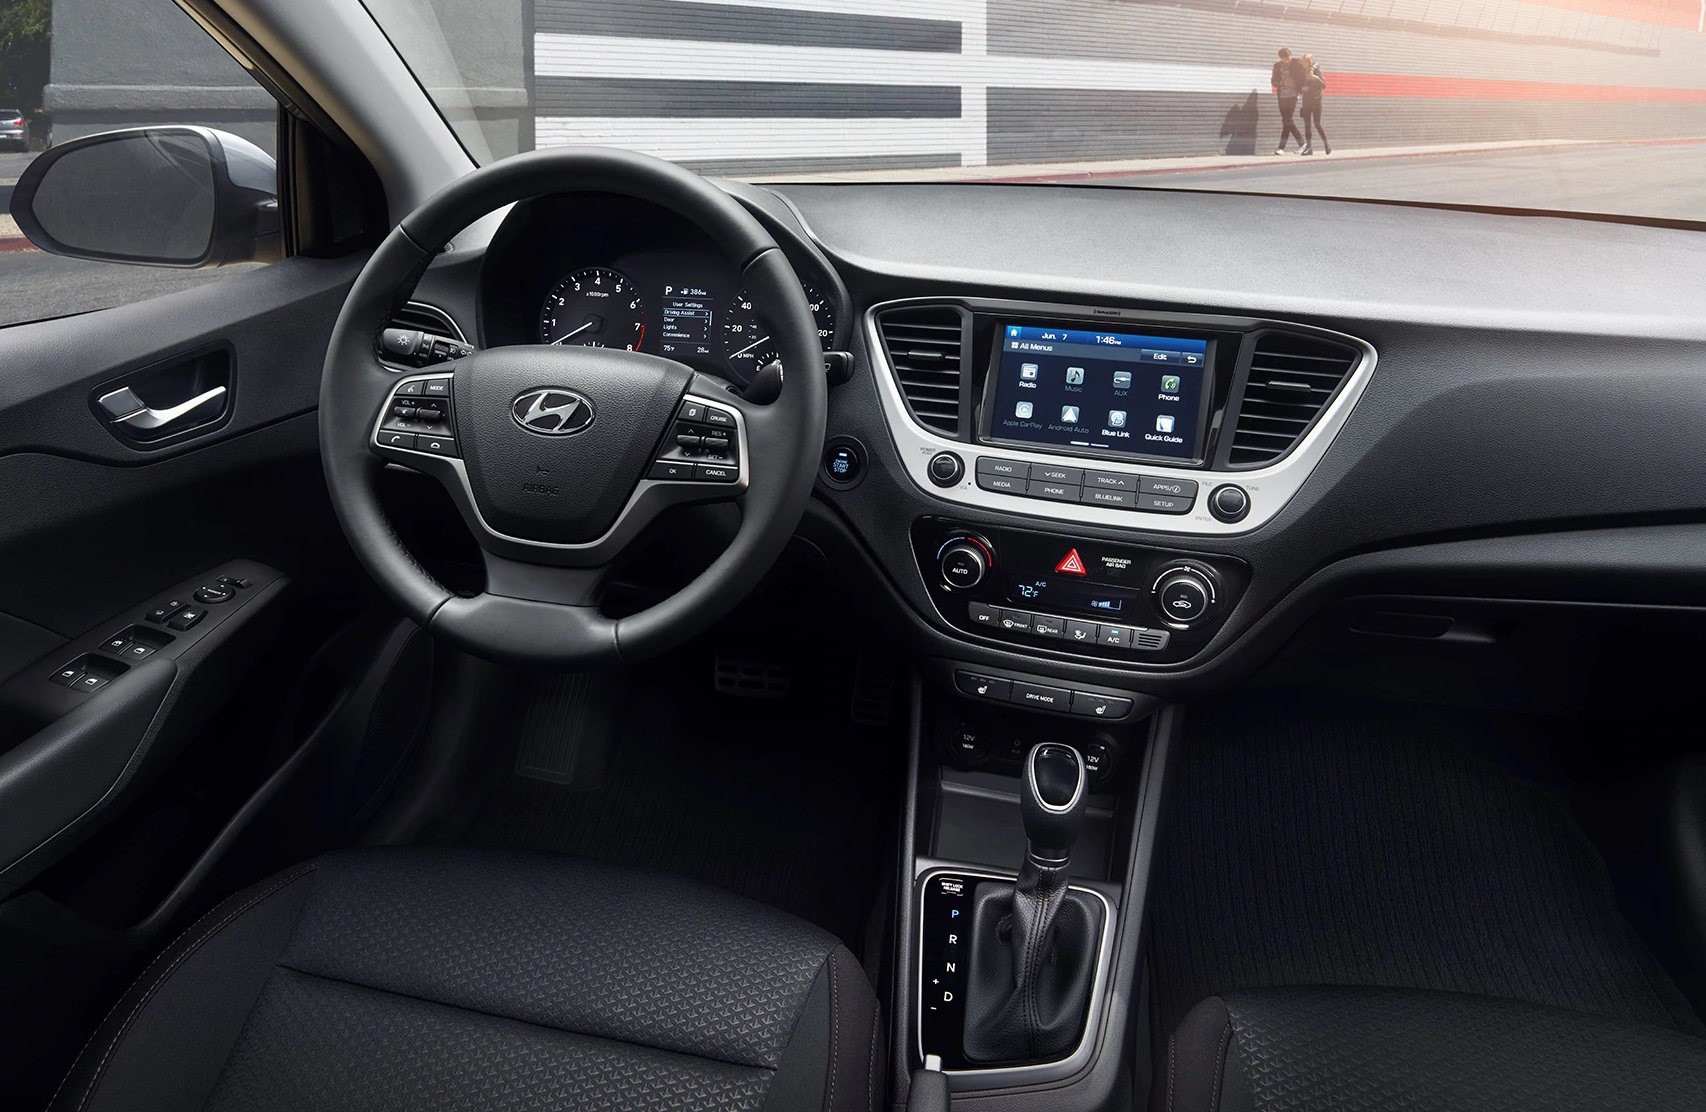 Denver Colorado - 2019 Hyundai Accent's Interior